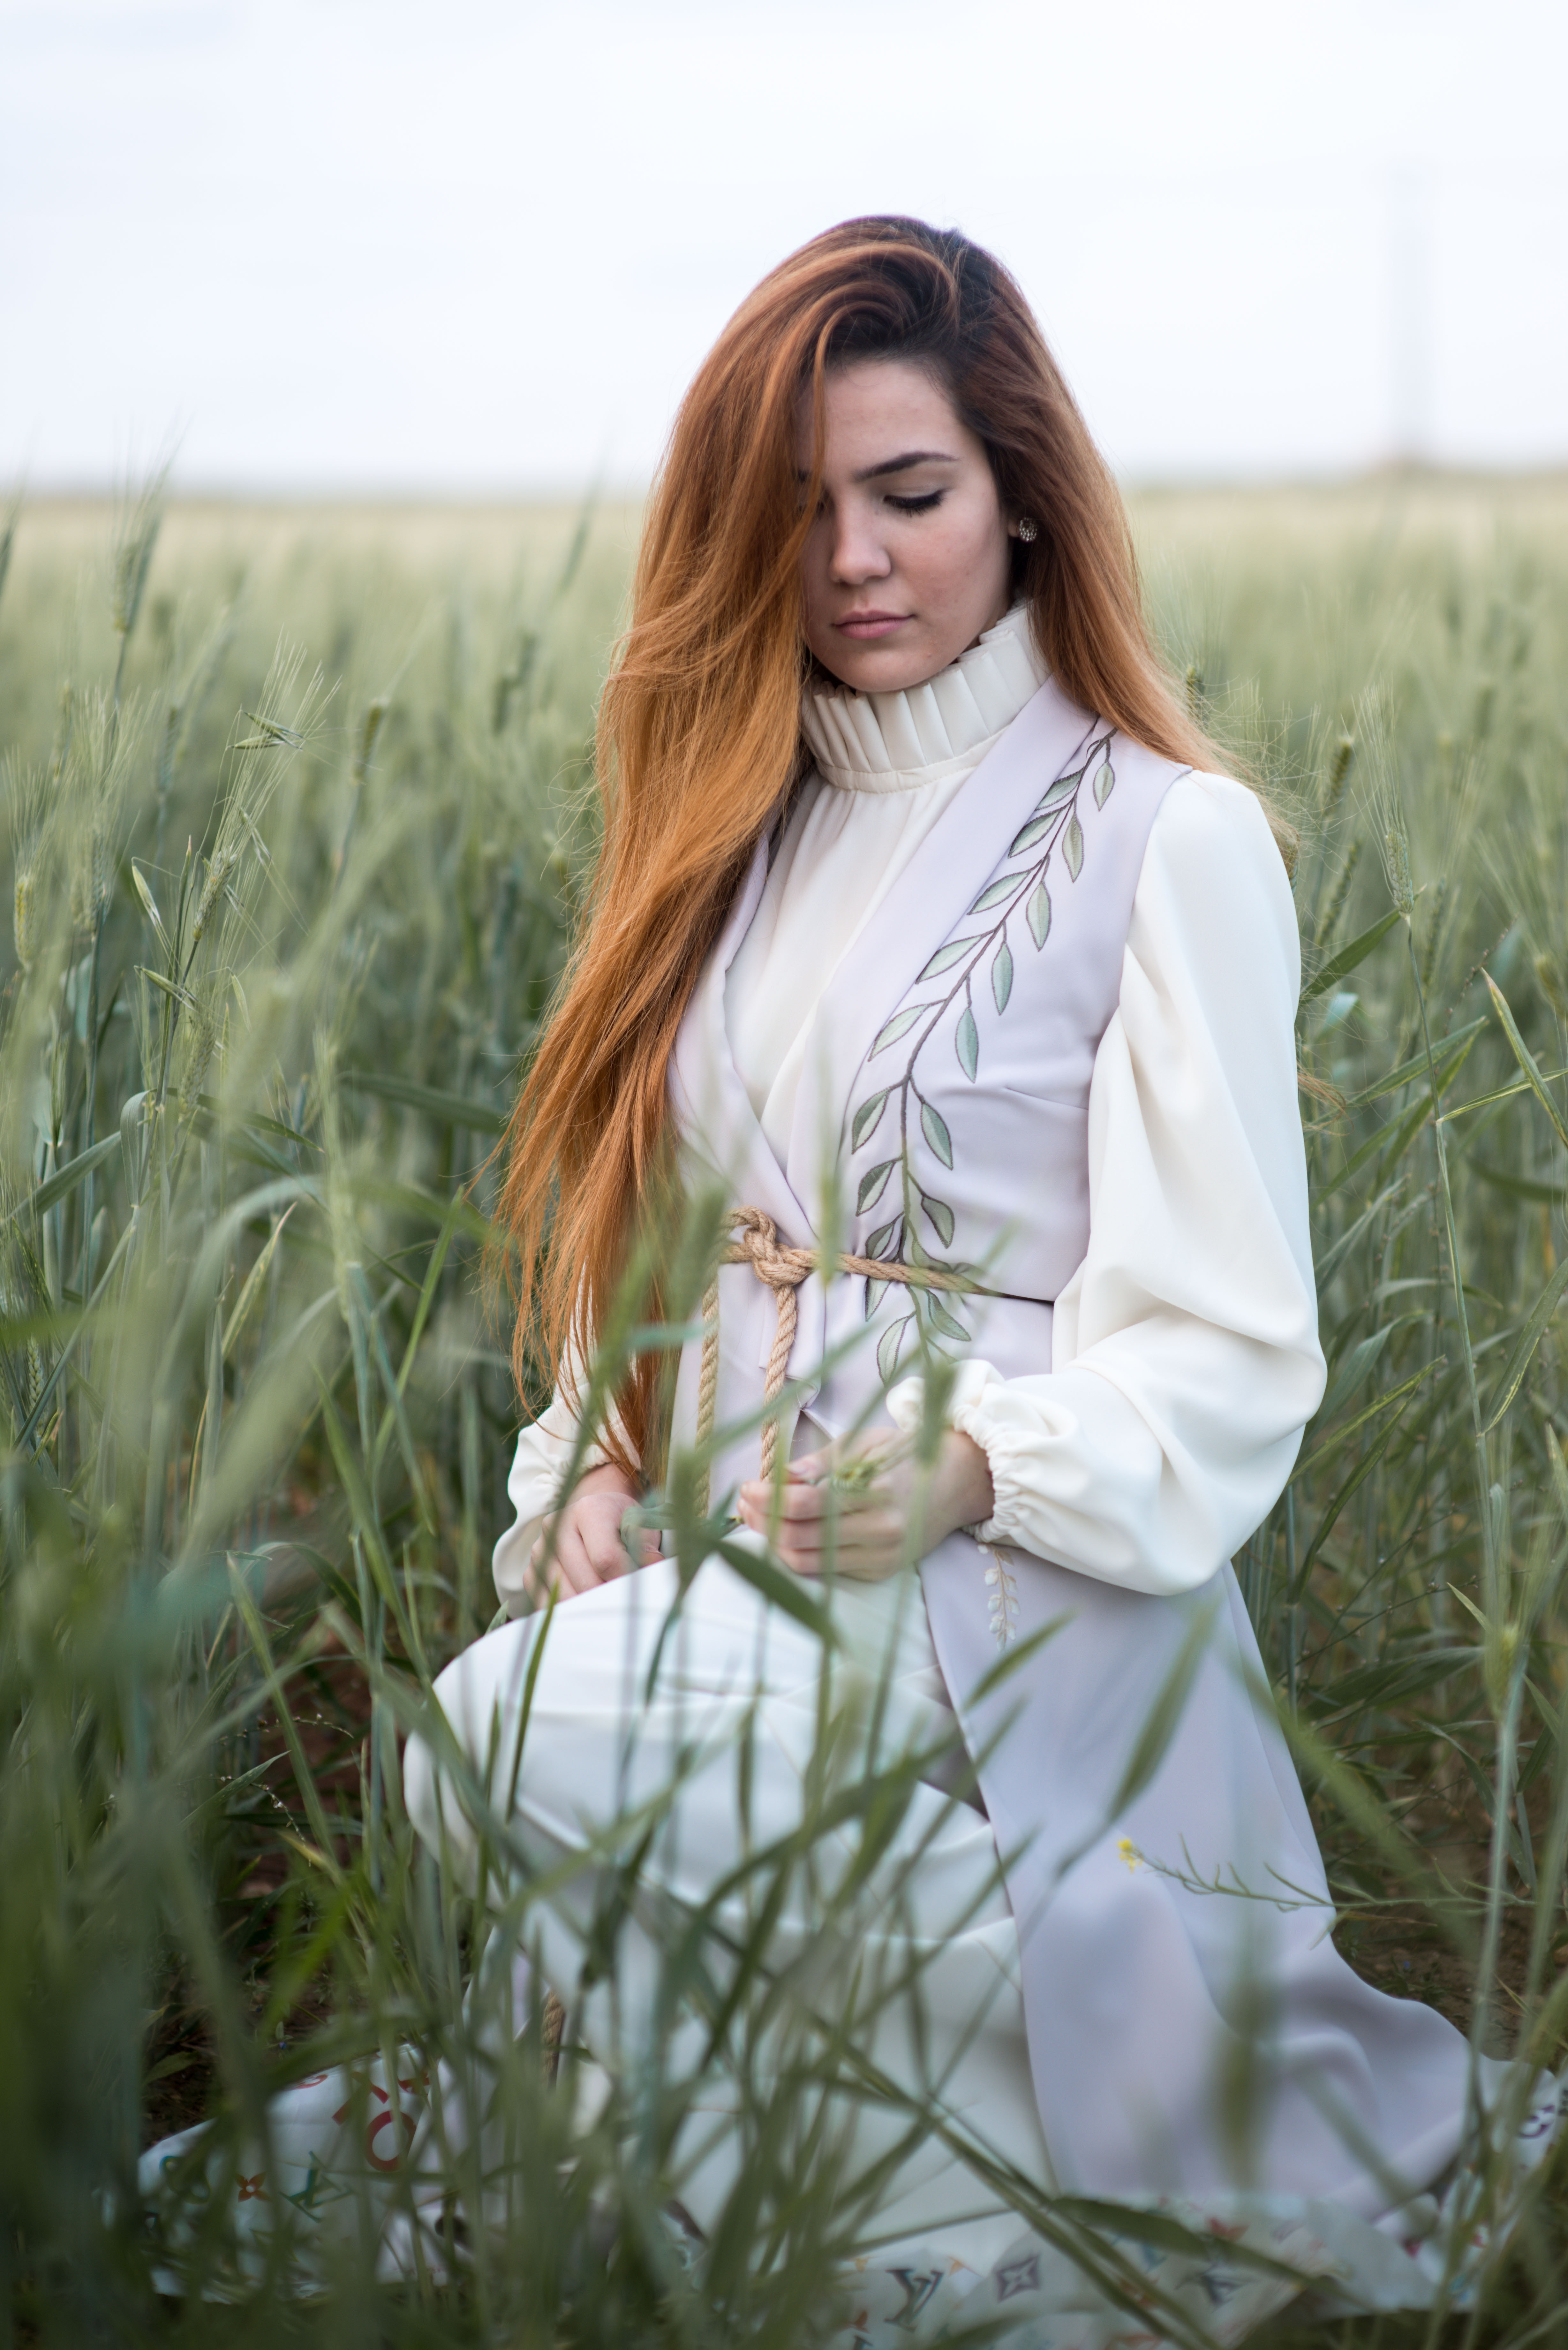 woman in white dress holding green grass during daytime